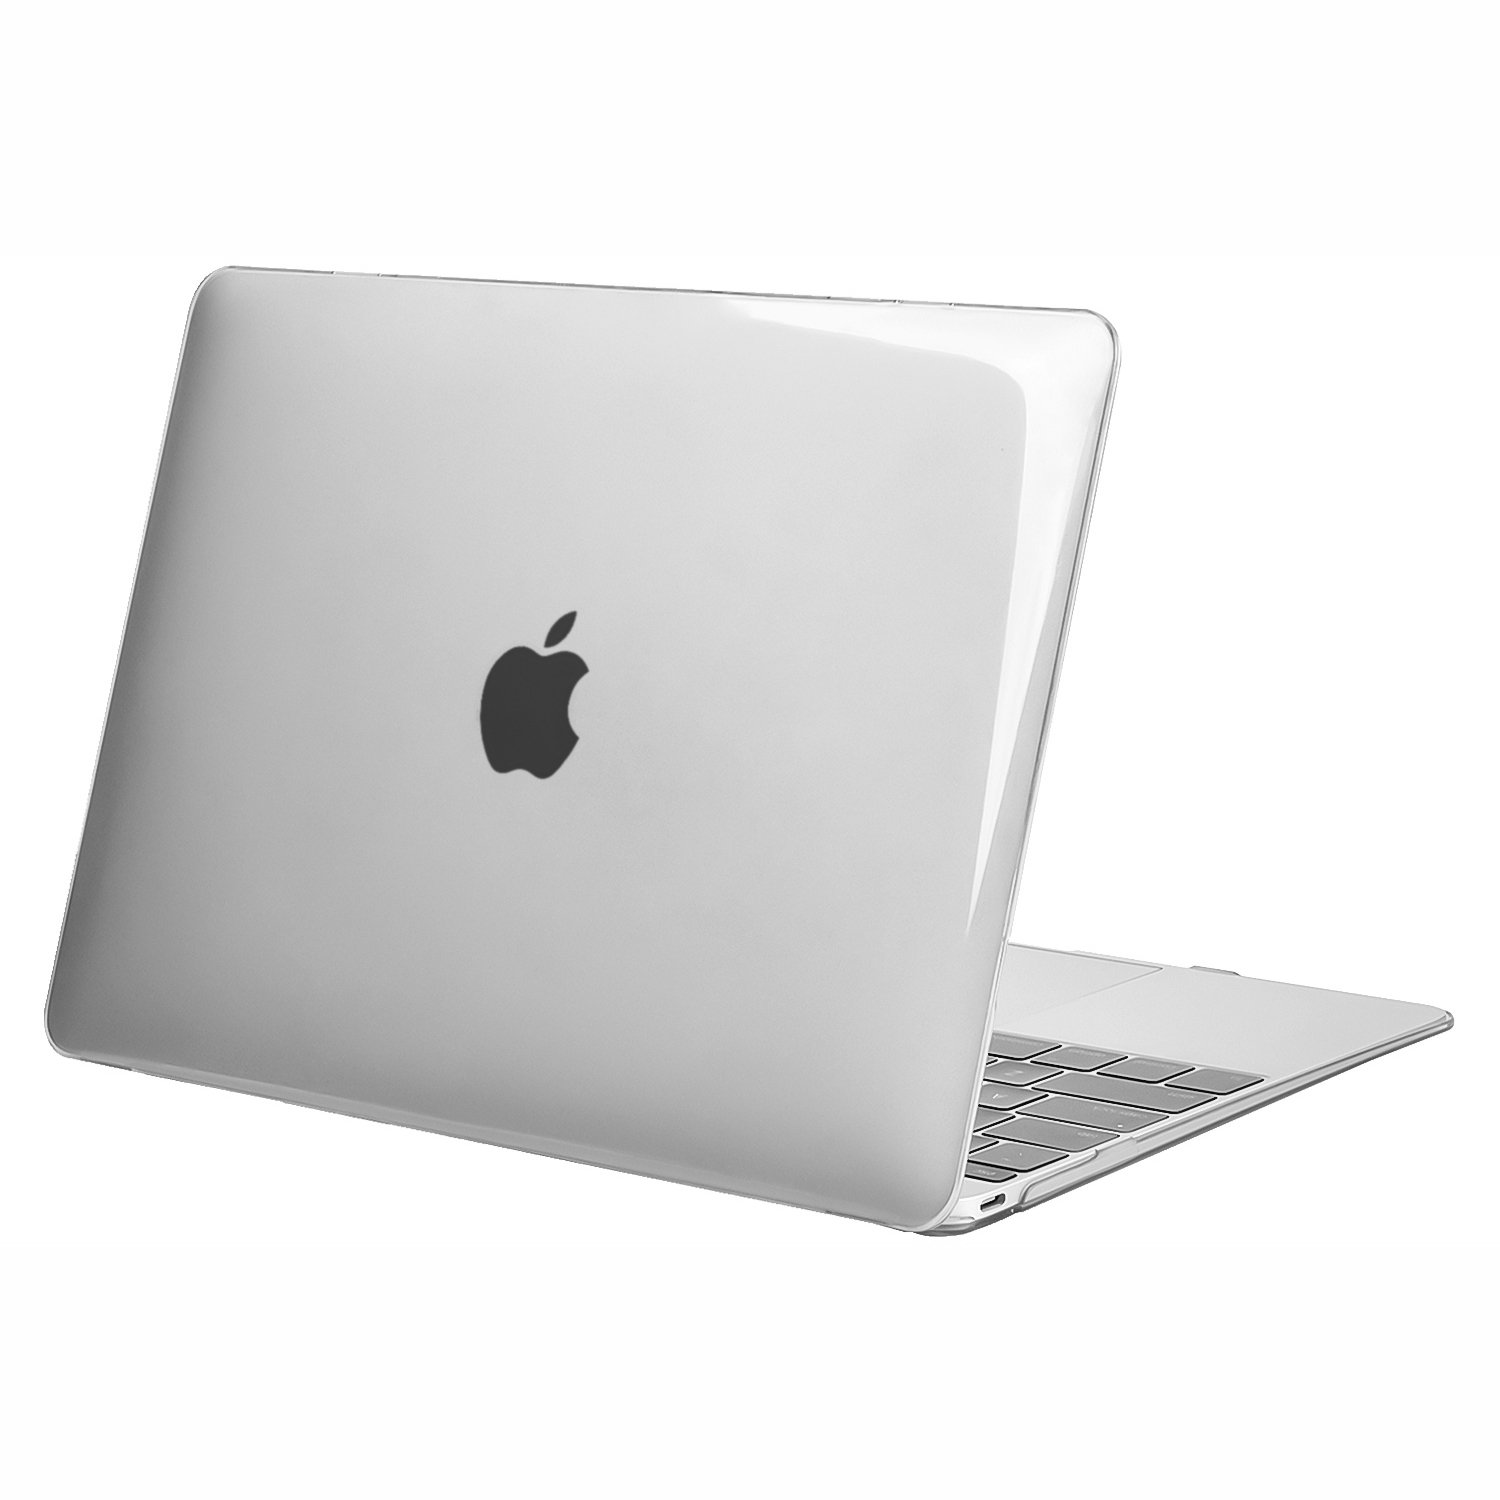 MOSISO Plastic Hard Shell Case Cover Compatible MacBook 12 Inch with Retina Display Model A1534 (Version 2017/2016/2015), Crystal Clear